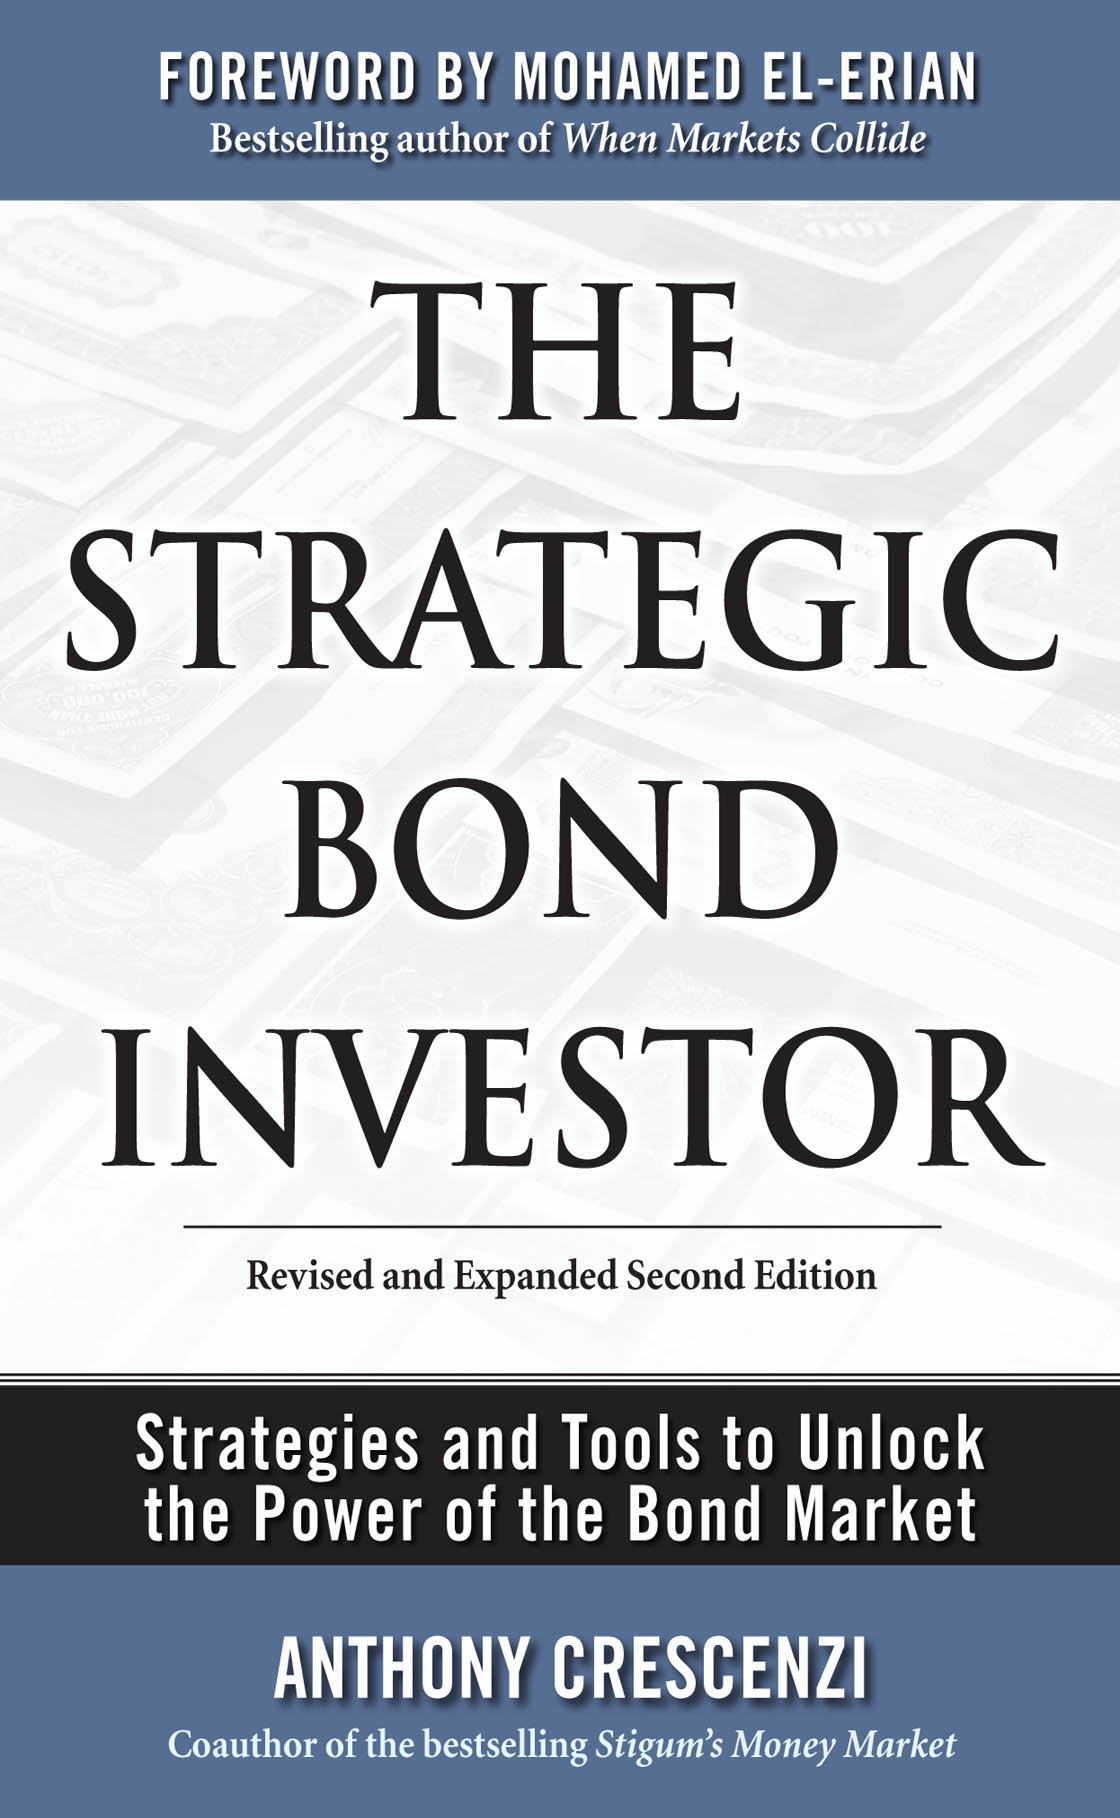 Download Ebook The Strategic Bond Investor: Strategies and Tools to Unlock the Power of the Bond Market (2nd ed.) by Anthony Crescenzi Pdf